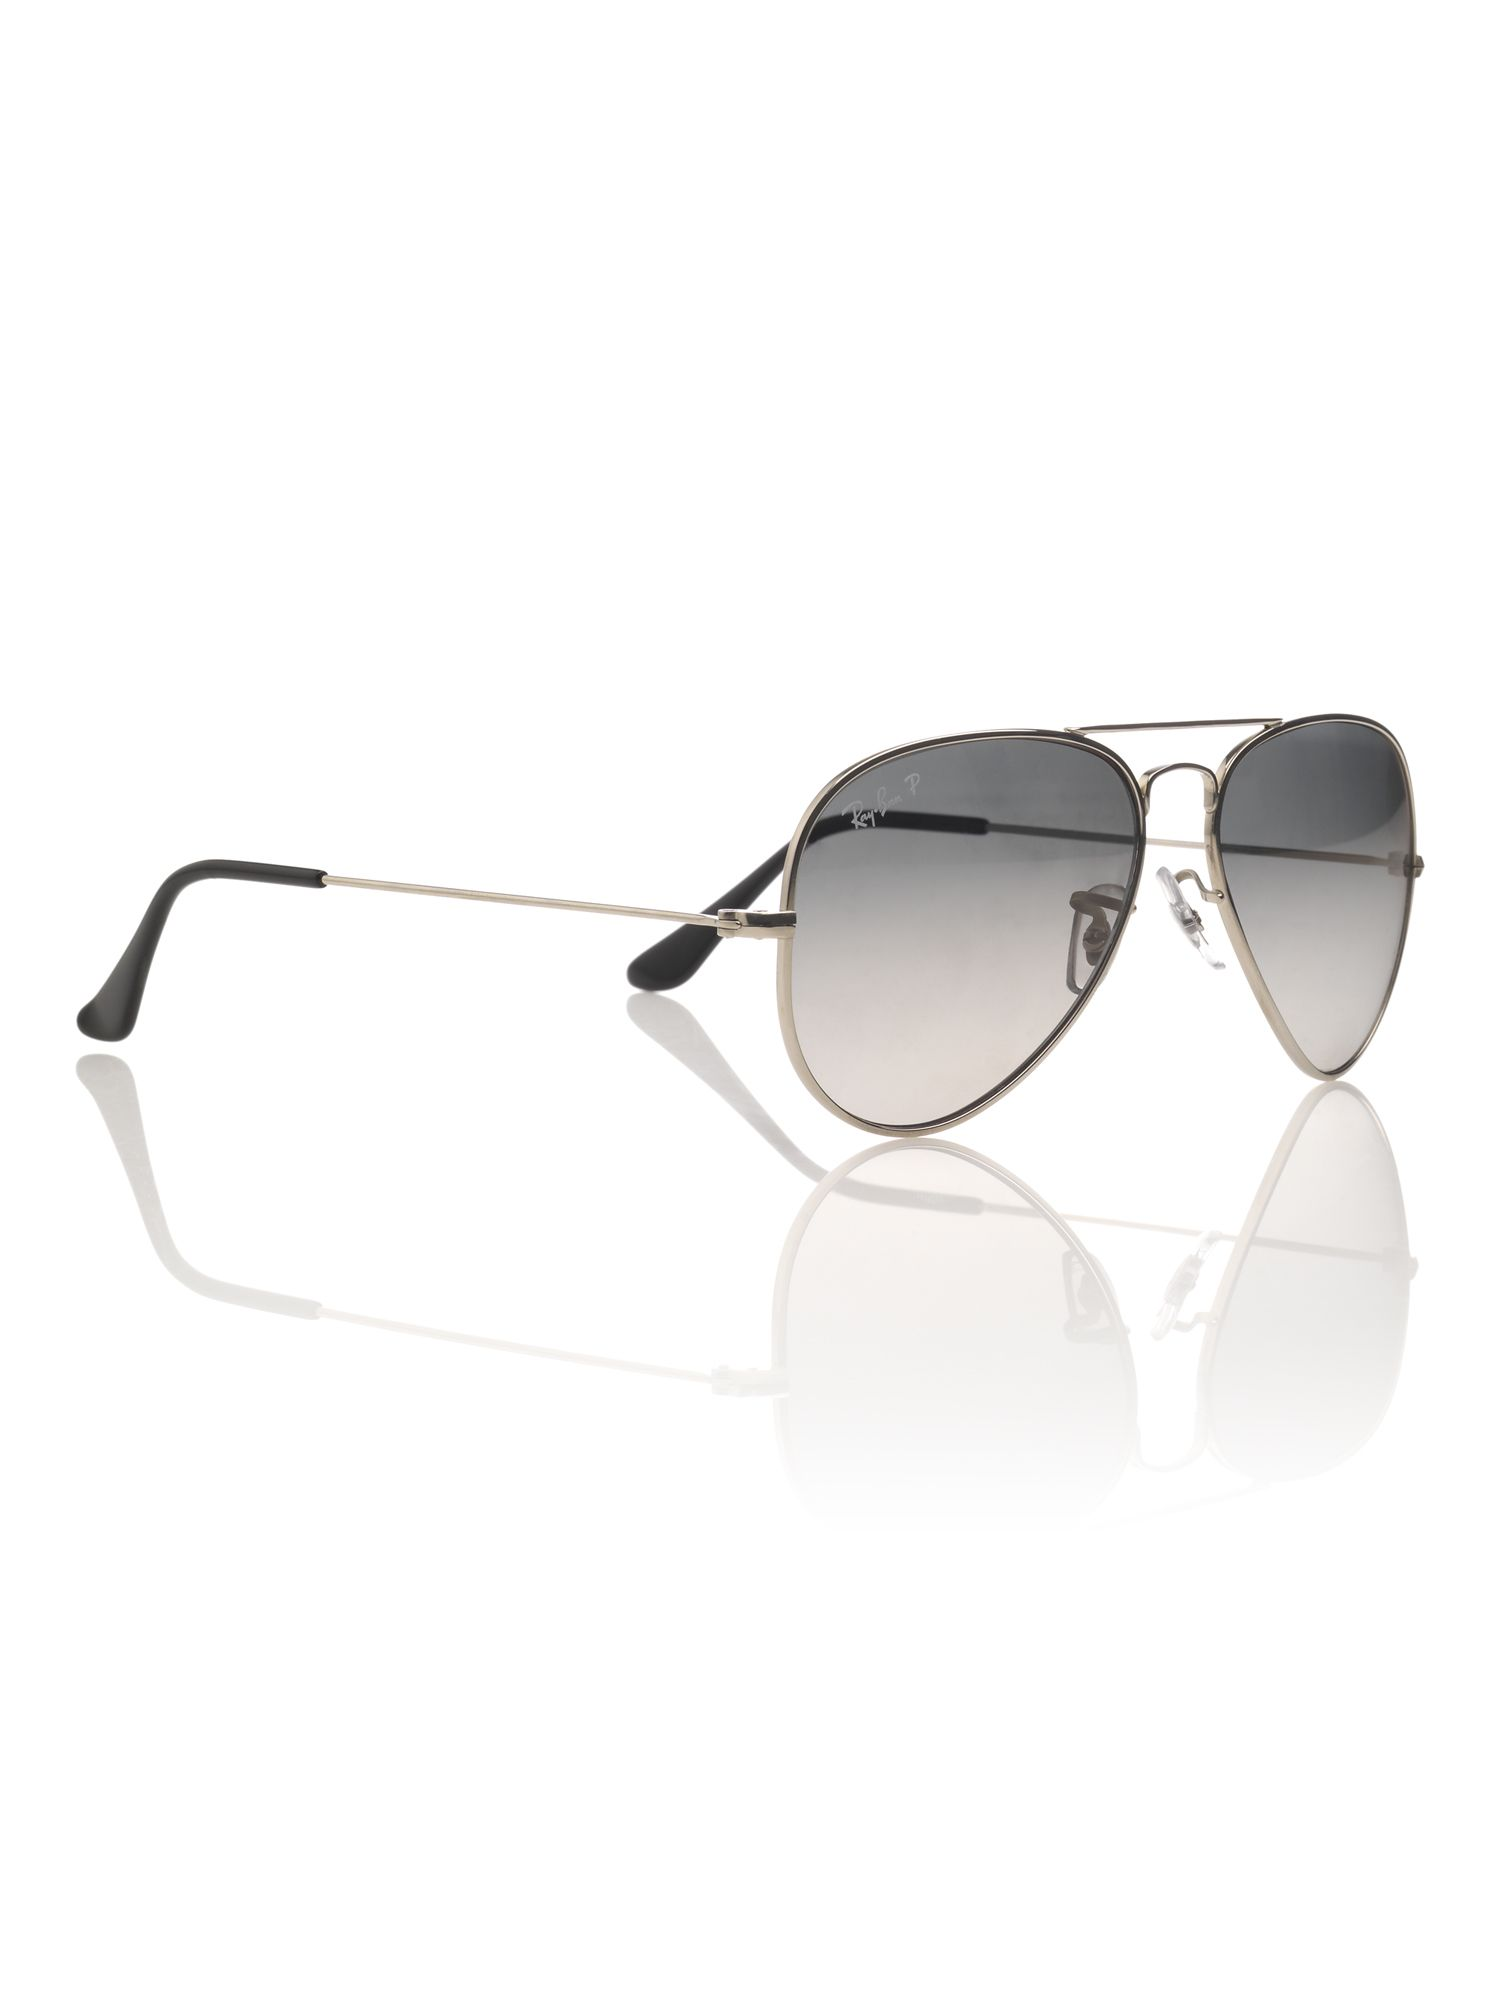 Unisex RB8041 Pilot Sunglasses